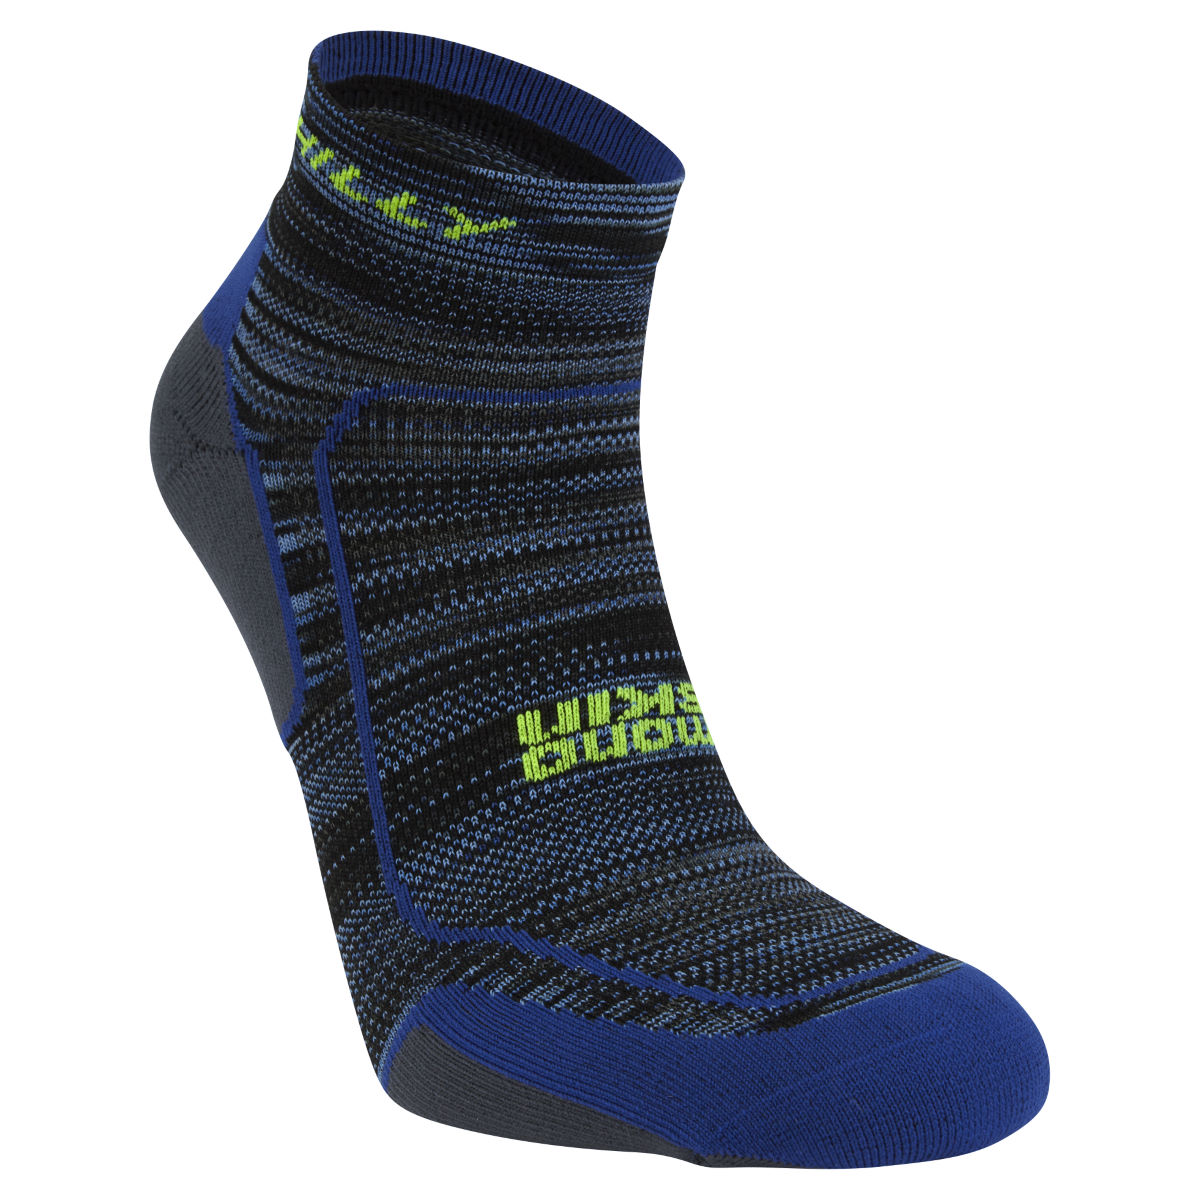 Chaussettes Hilly Lite-Comfort - M Cobalt/Charcoal  Chaussettes